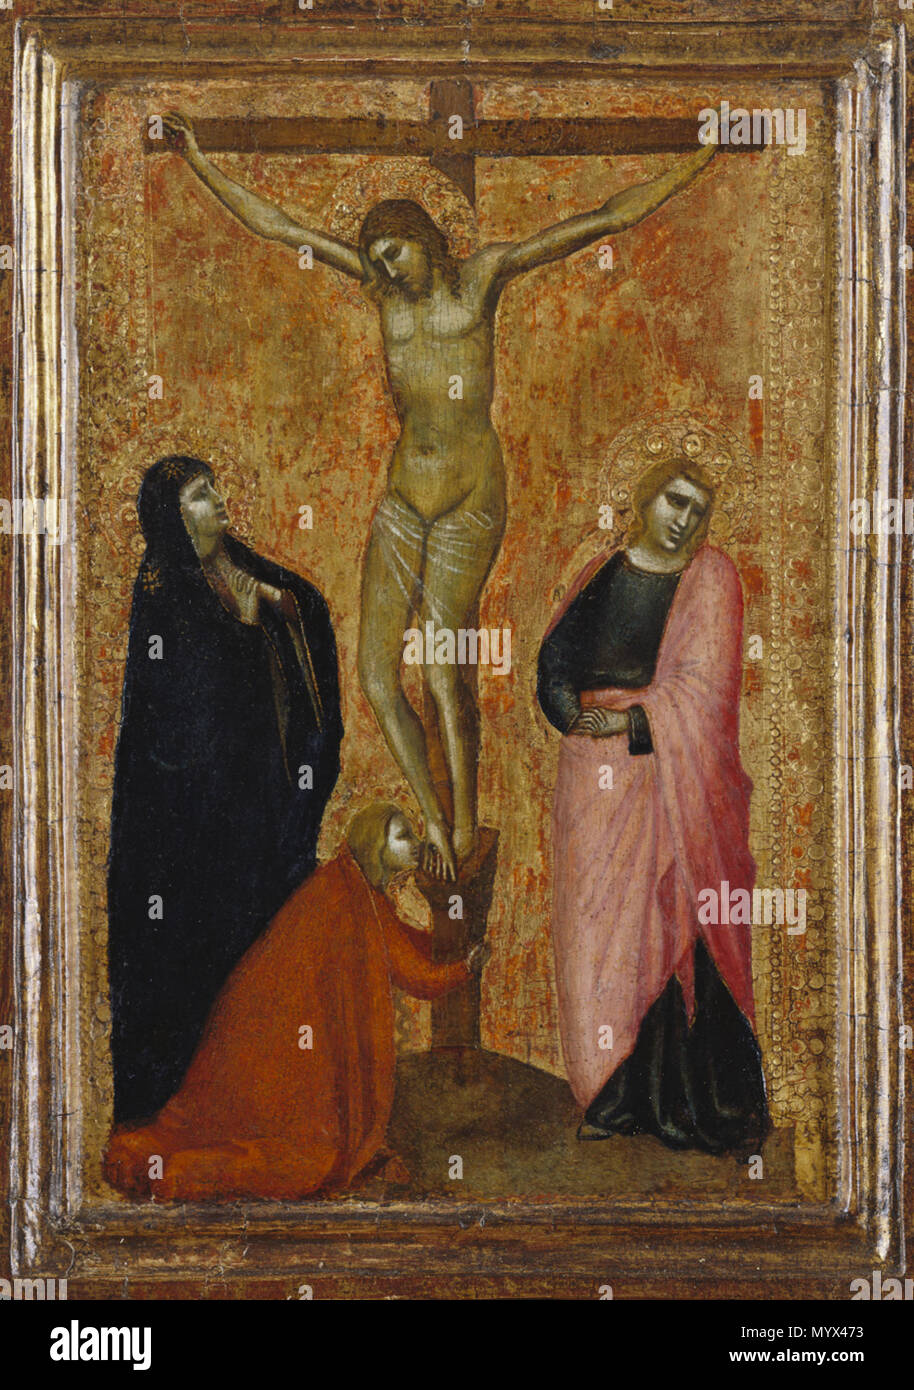 . Crucifixion with the Virgin Mary, St. John the Evangelist, and St. Mary Magdalene . circa 1365 7 Crucifixion with the Virgin Mary, St. John the Evangelist, and St. Mary Magdalene - Allegretto Nuzi - Stock Image